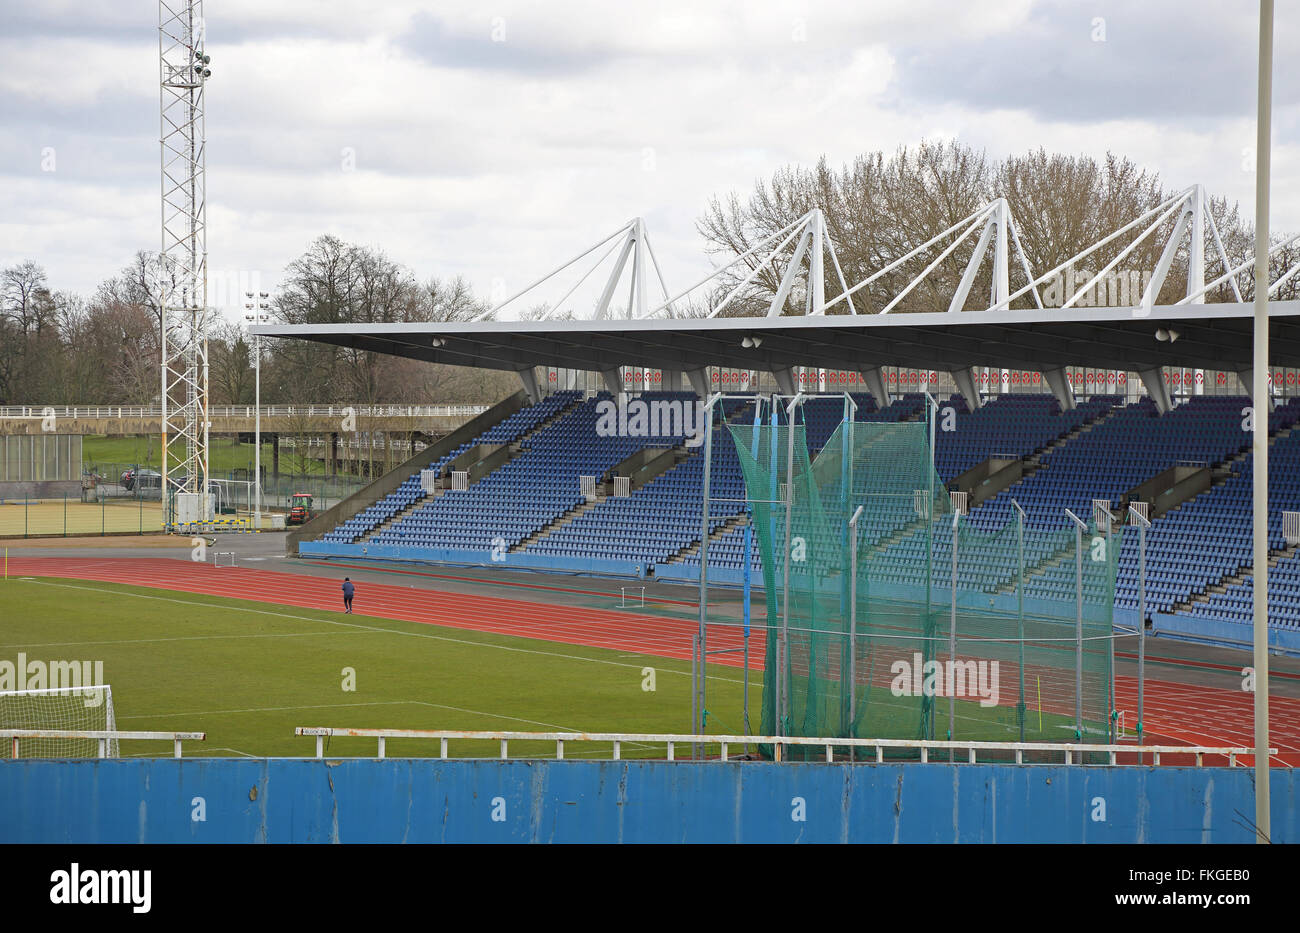 A lone,elderly runner practices on the athletics track in front of an empty grandstand at Crystal Palace Stadium. - Stock Image